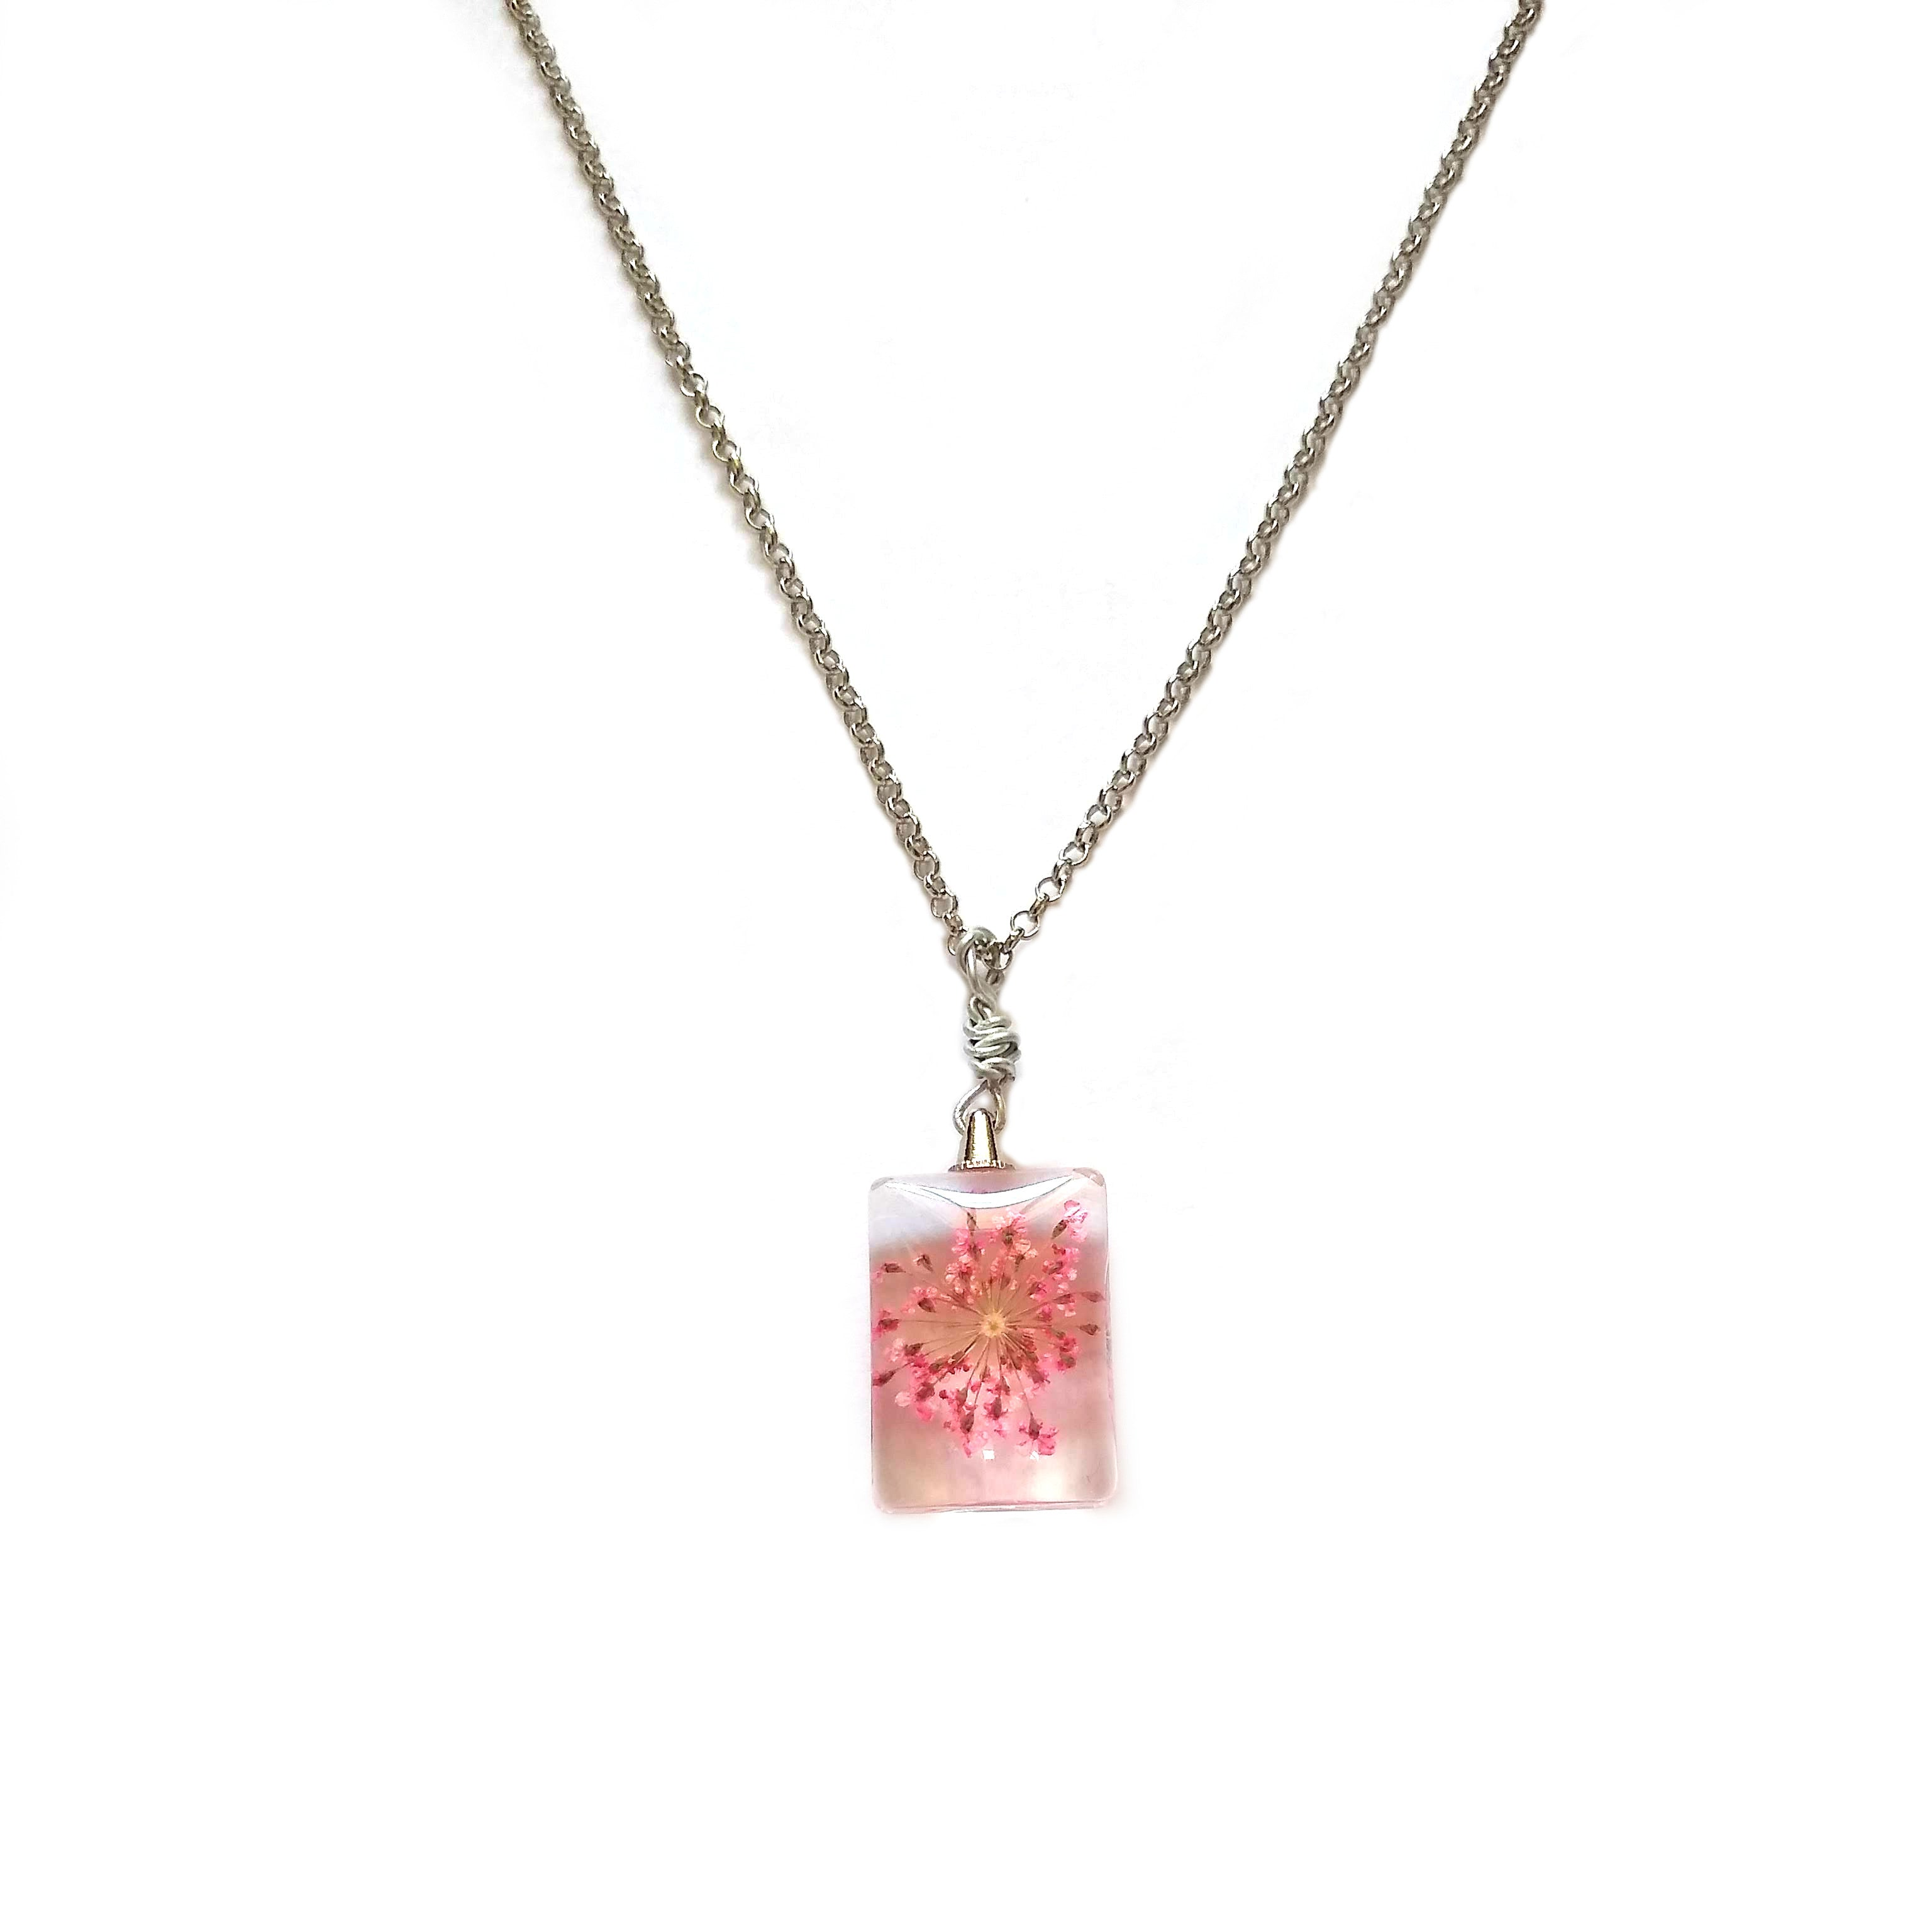 Fuchsia Floral Necklace